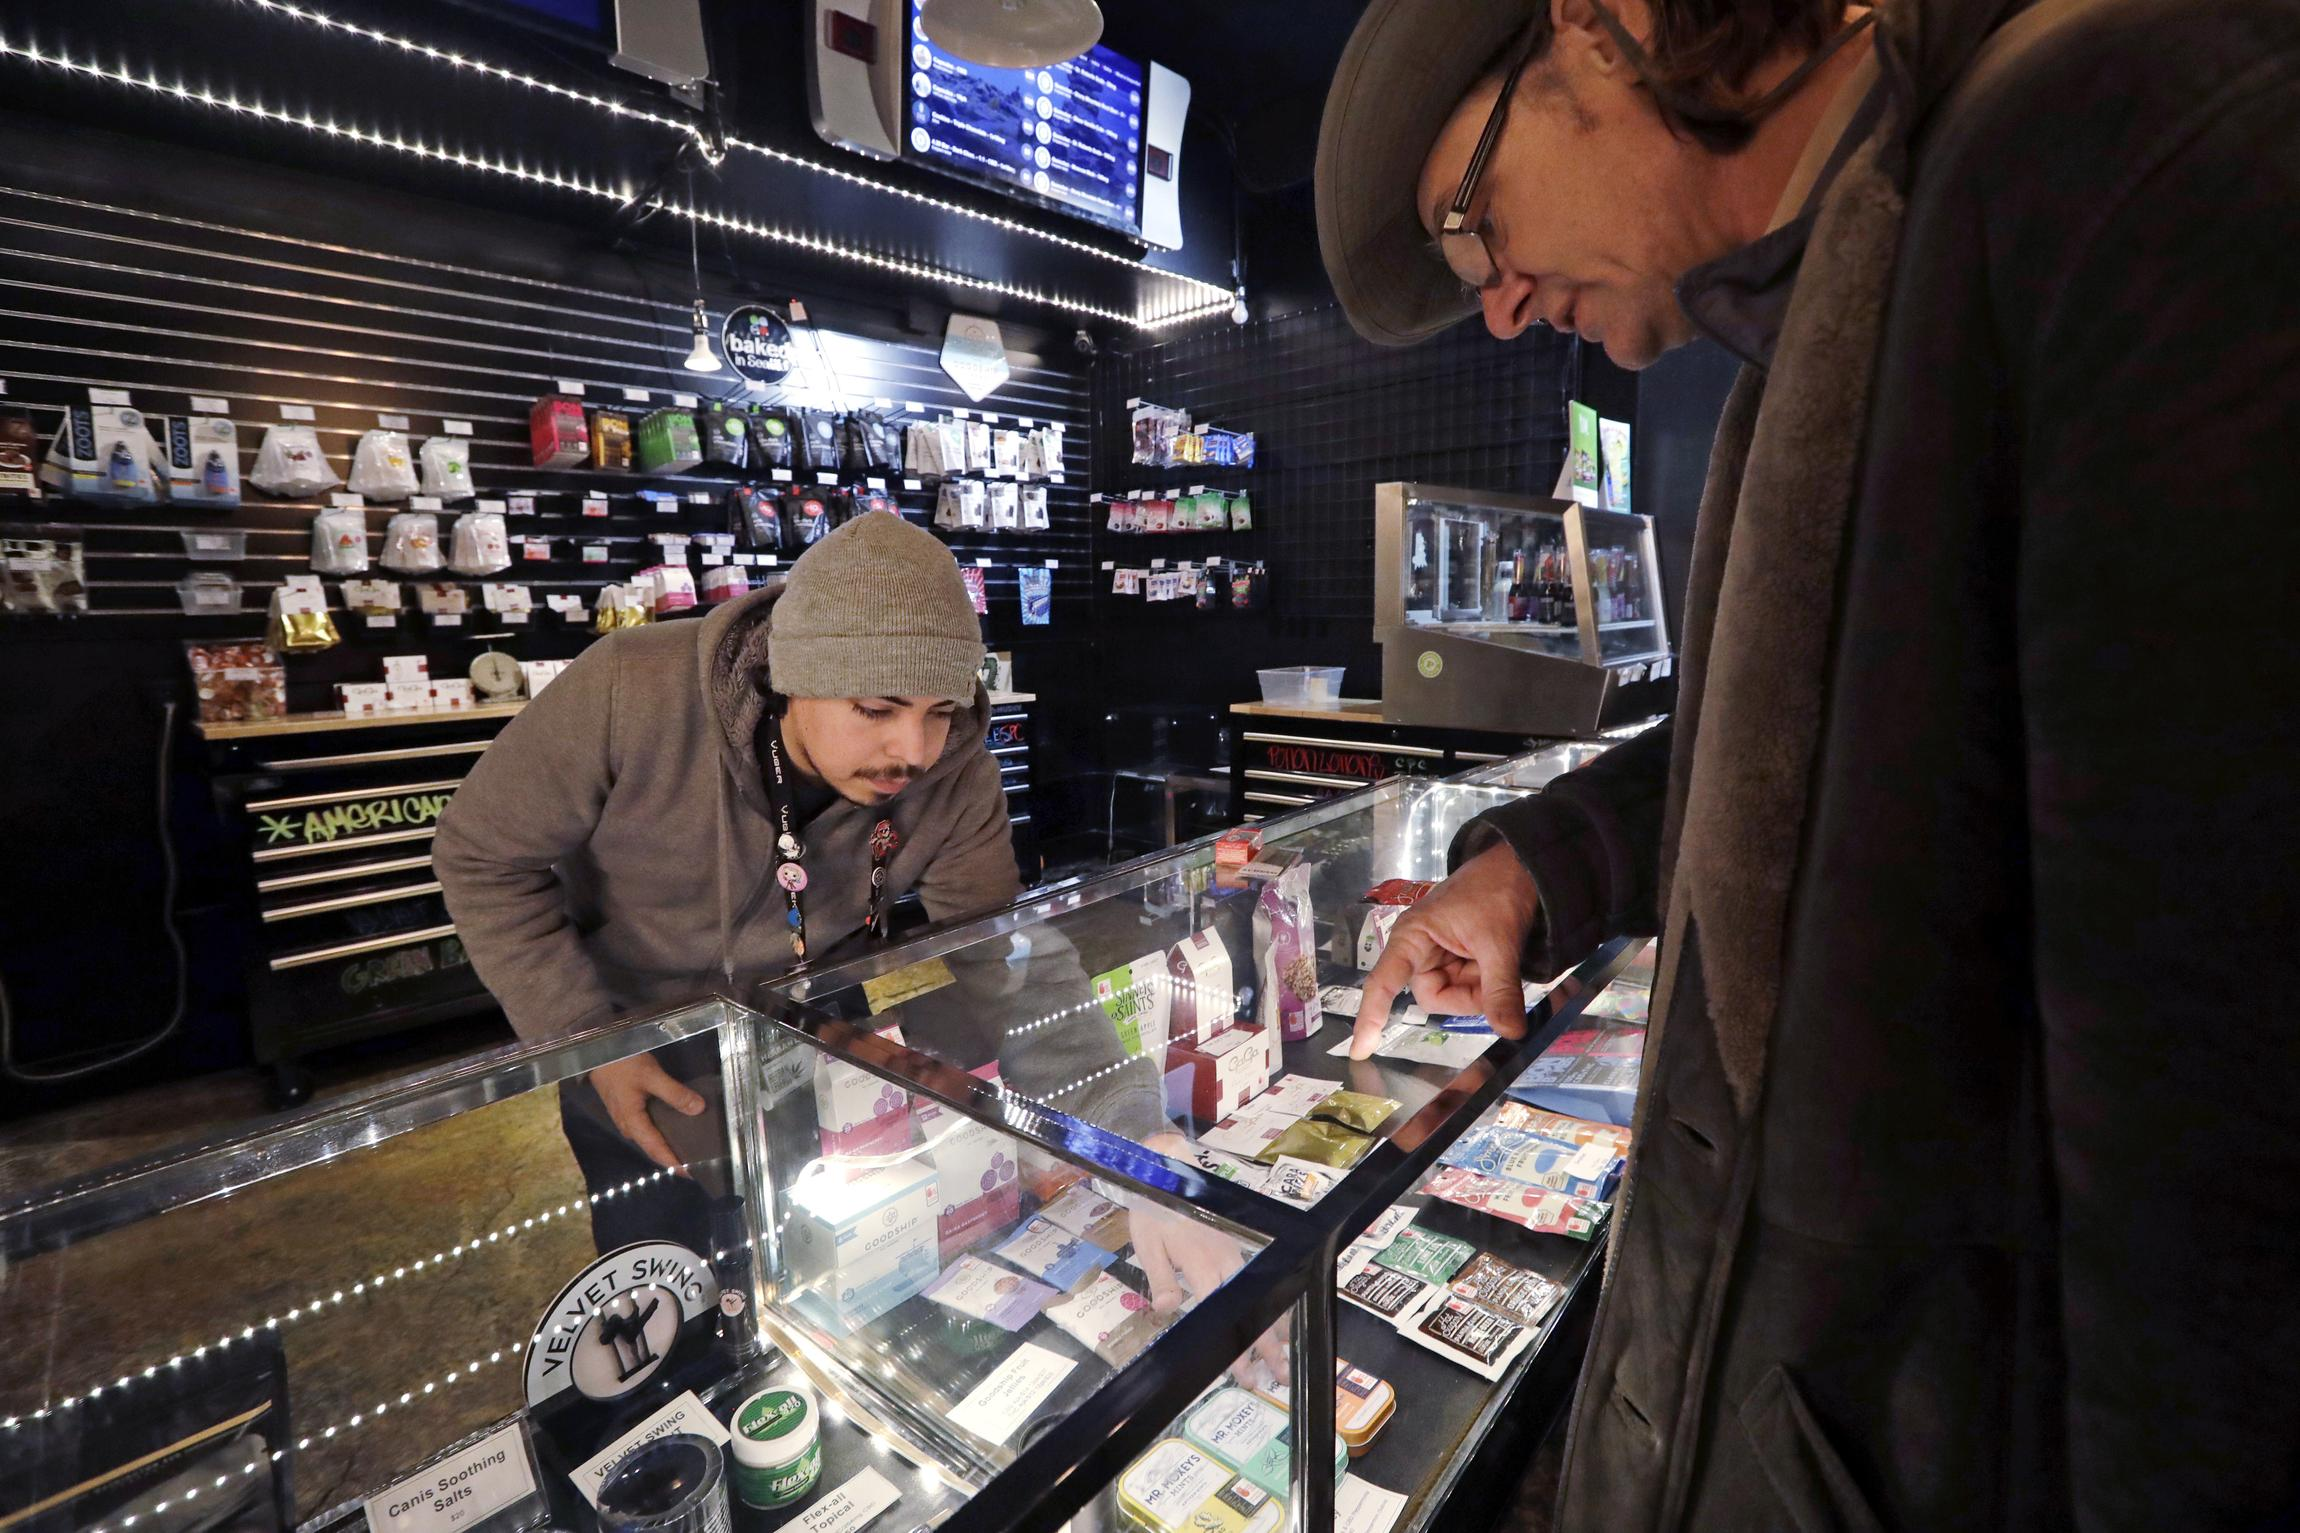 For Legal Pot Shops, Regulation Can Become Mob-Style Extortion